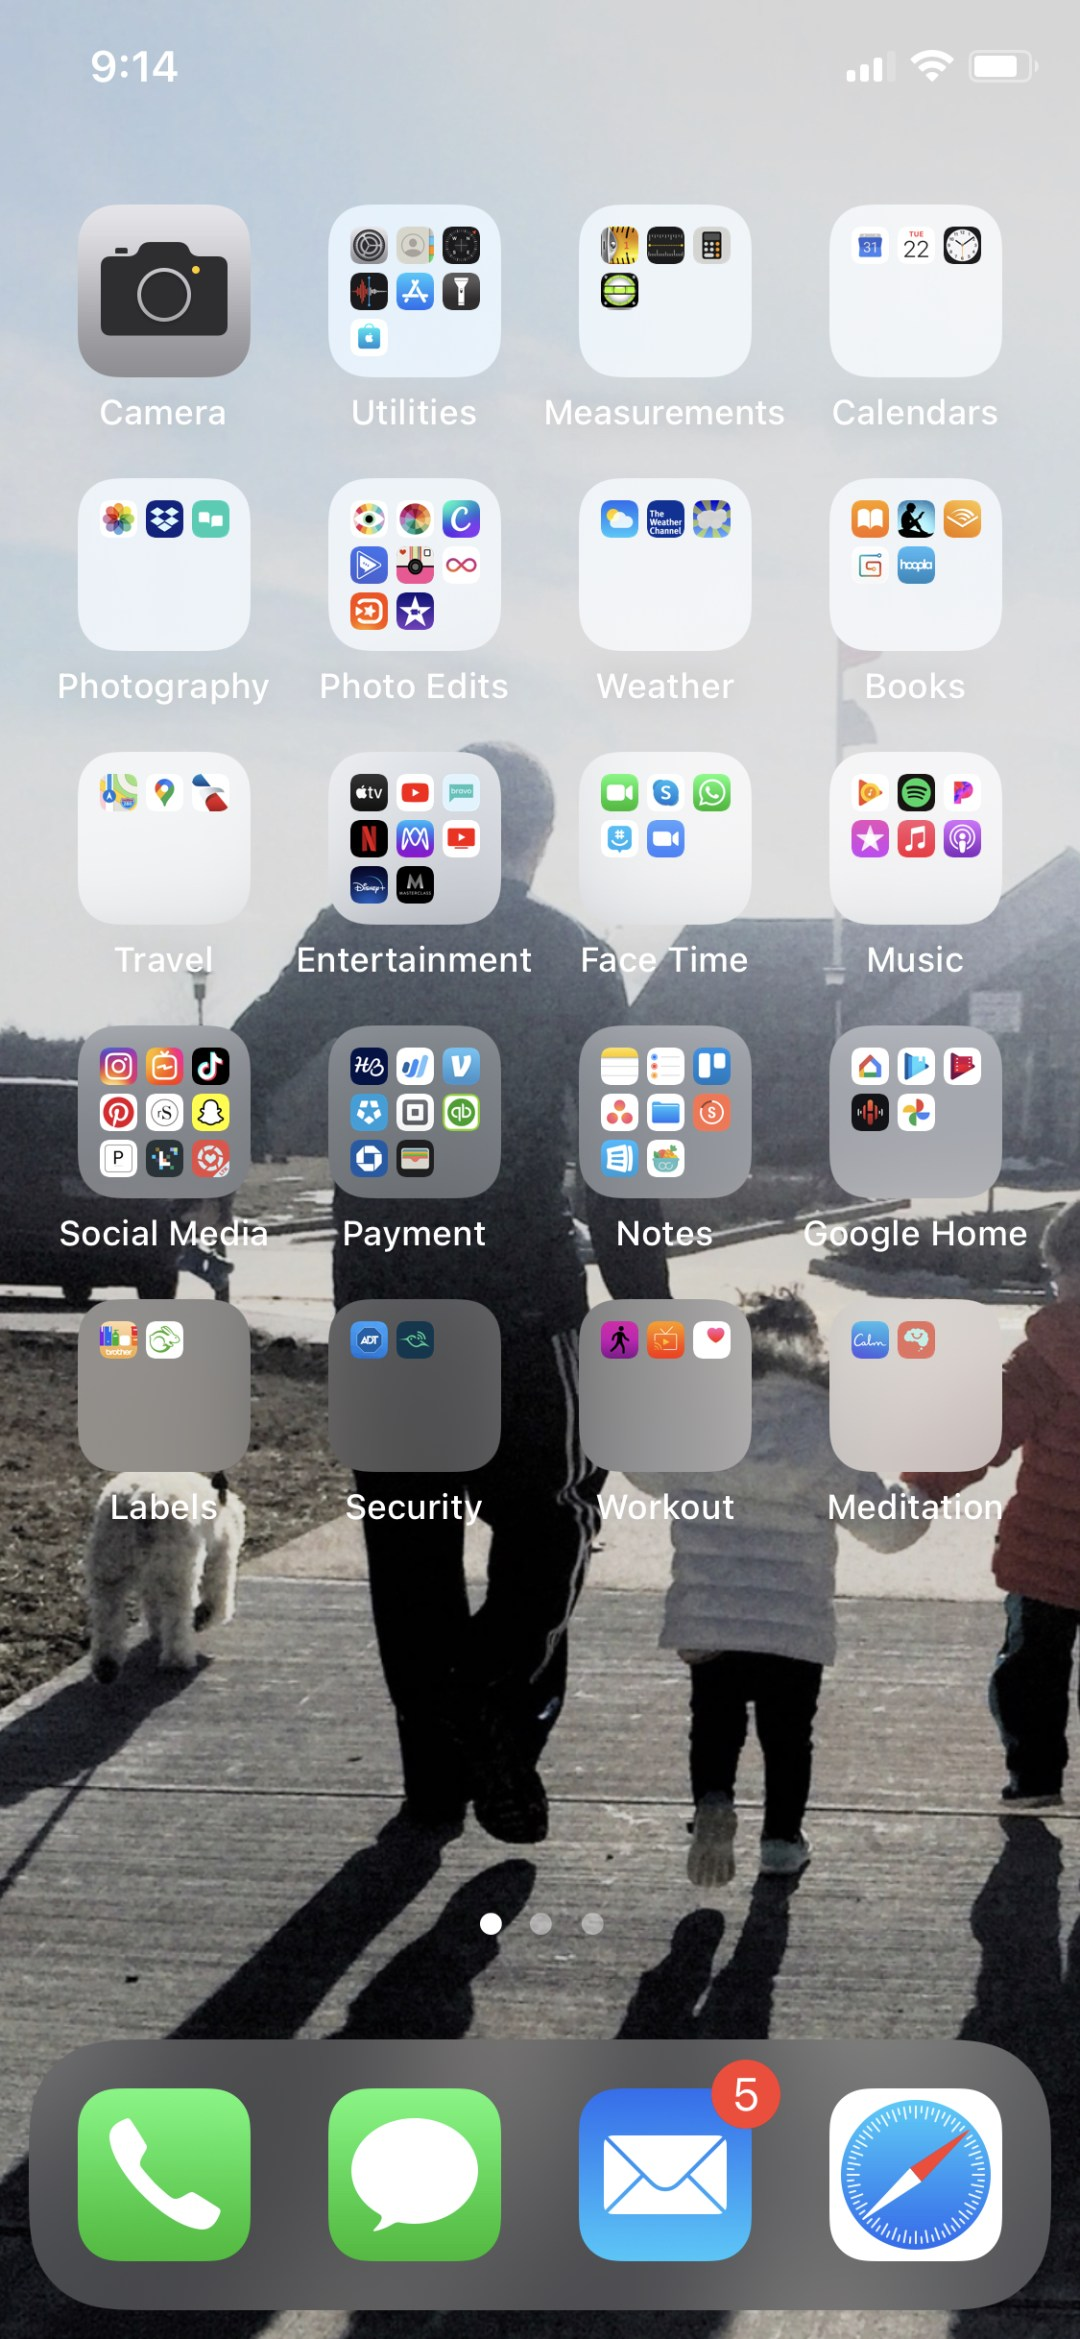 screenshot of iPhone apps organized by category